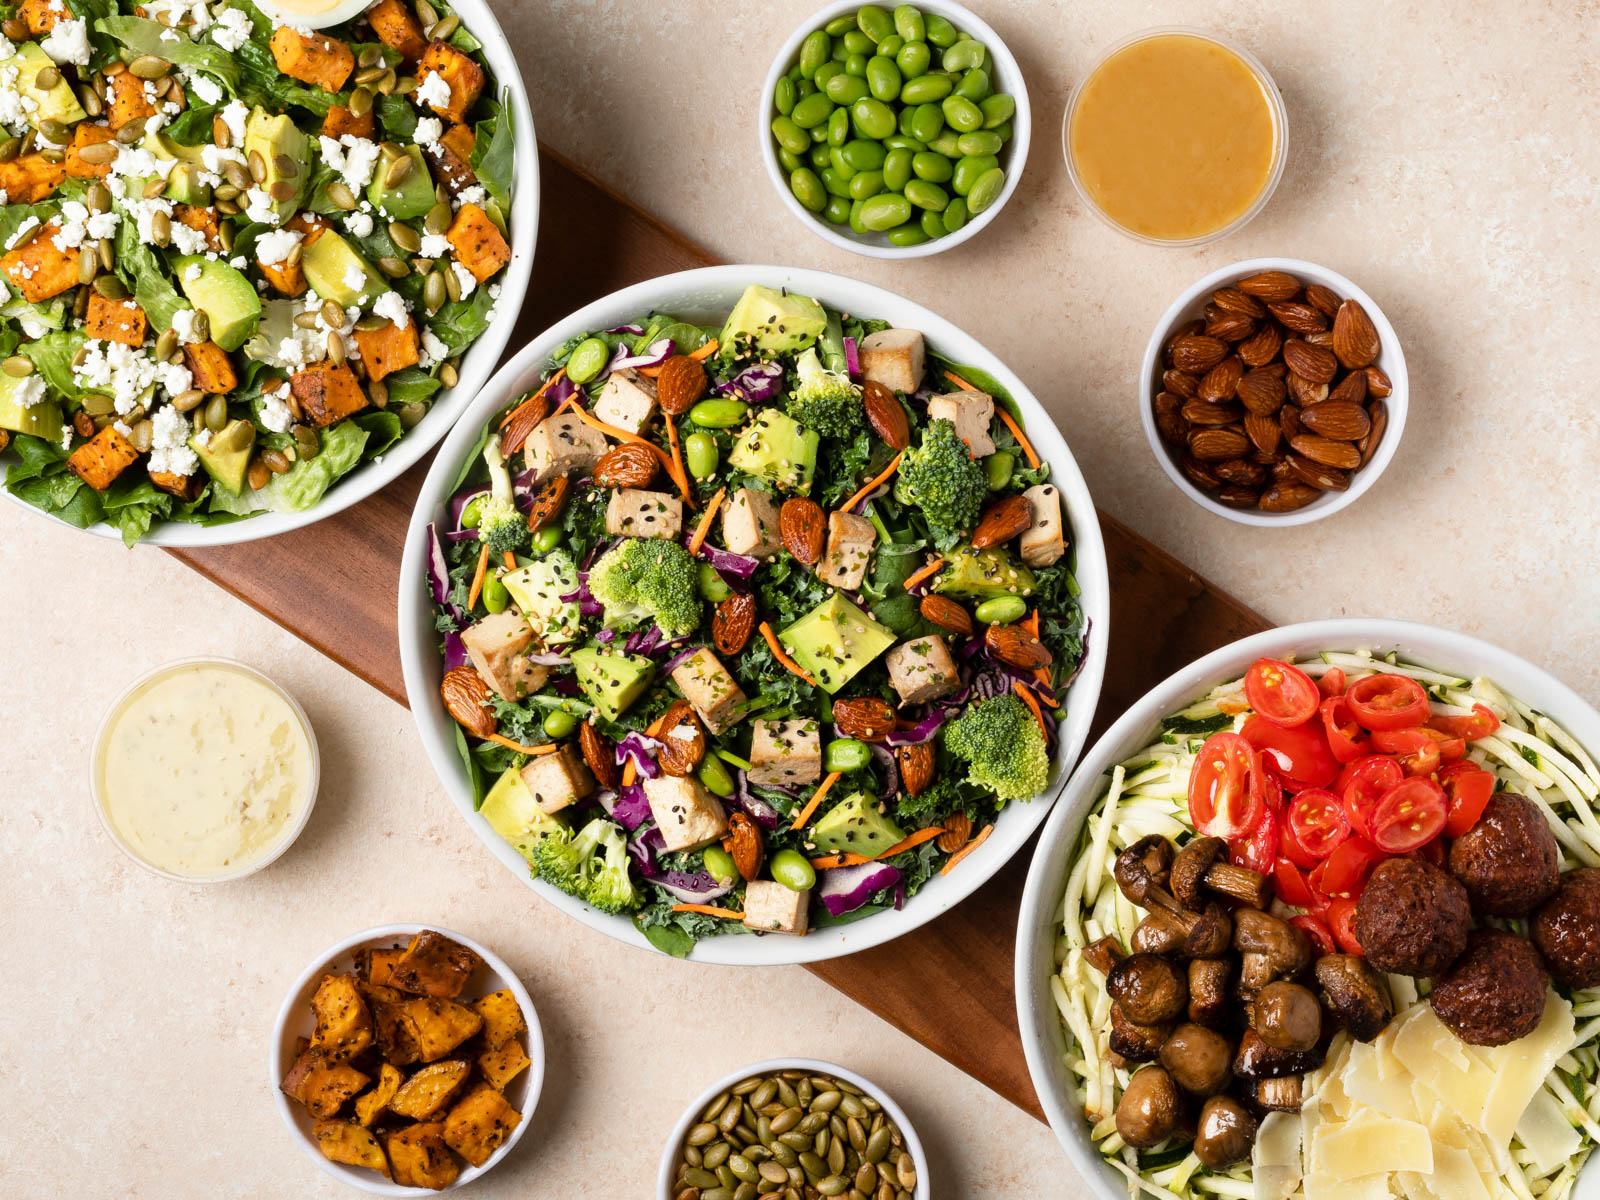 Health Tribes: Just Salad x GrubHub